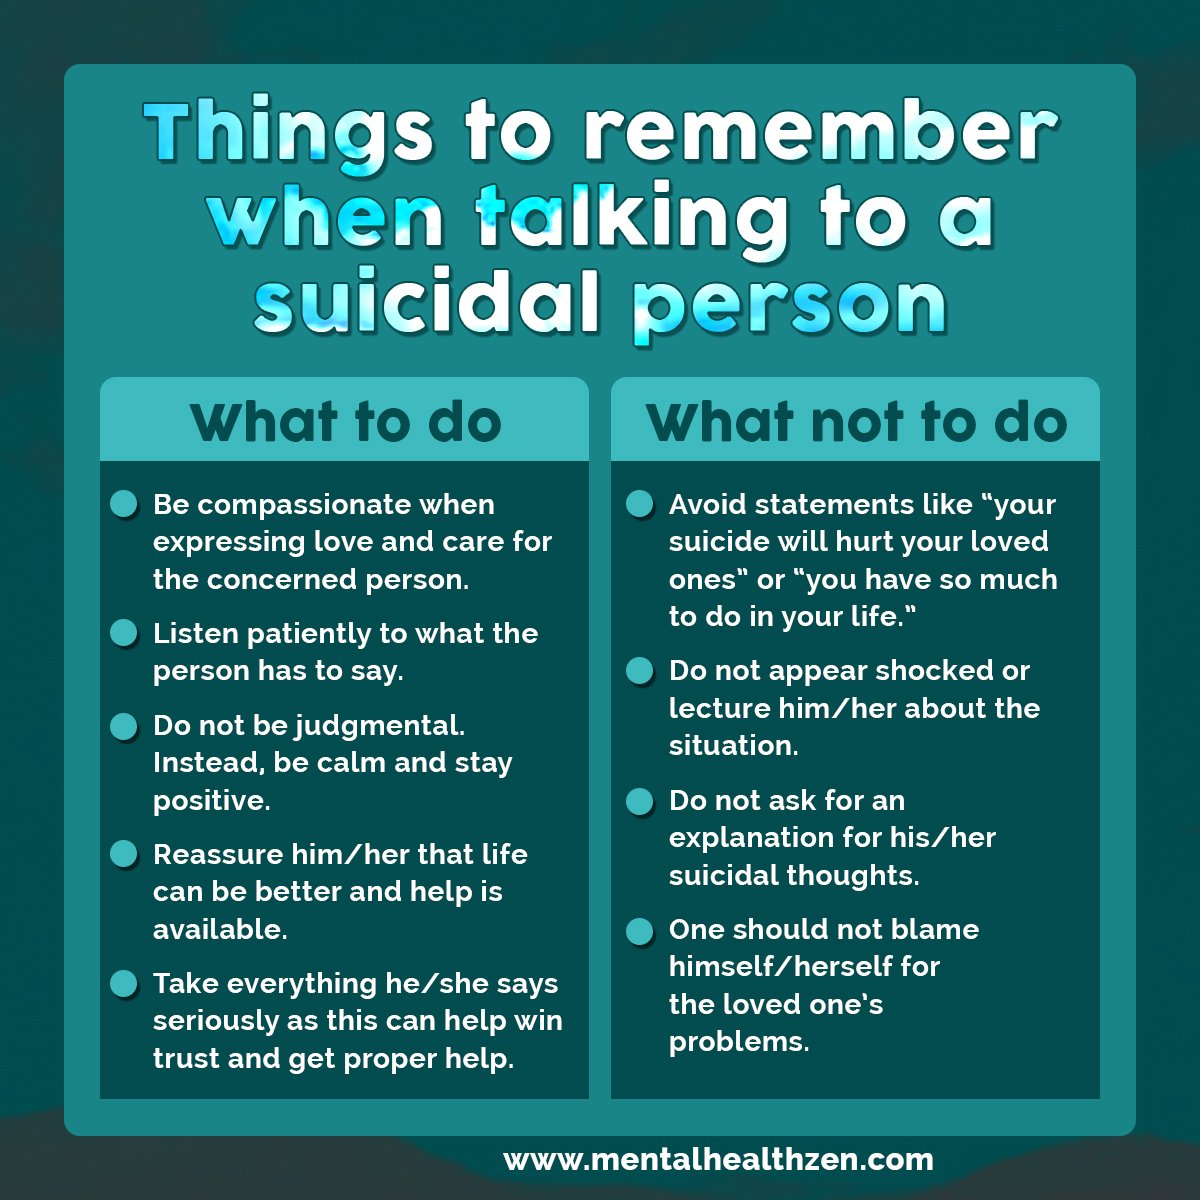 #Tips when talking to a #suicidal person. #PeaceDay #ThursdayThoughts #WorldGratitudeDay #Mentalhealth @DrDeniseMD @APA #Mentalhealth @WebMD<br>http://pic.twitter.com/L5hs0buFPi